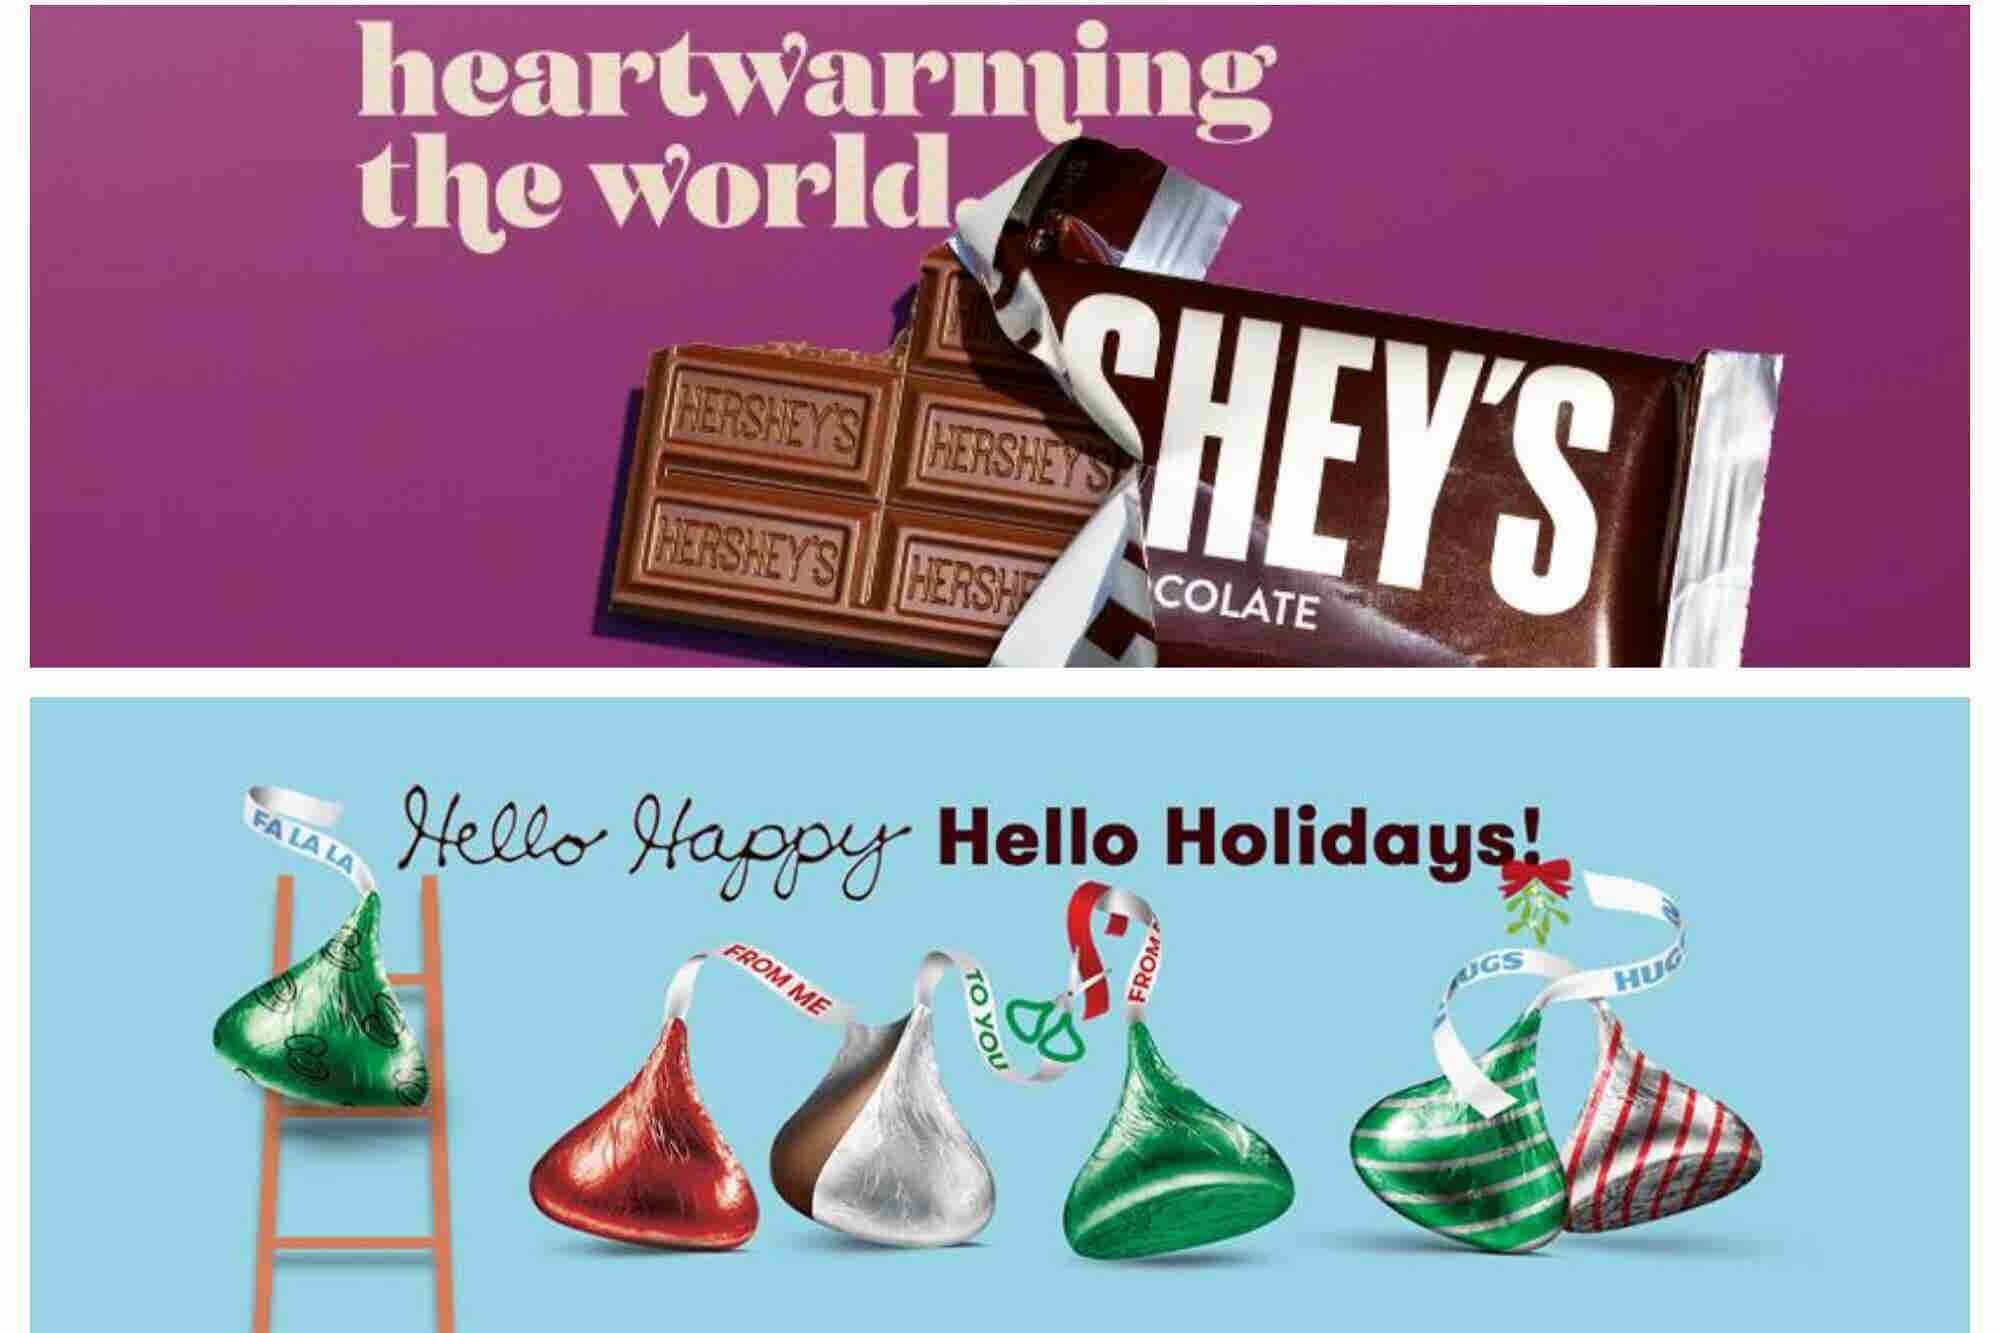 America's Iconic Chocolate Brand Introduces a New Addition in India